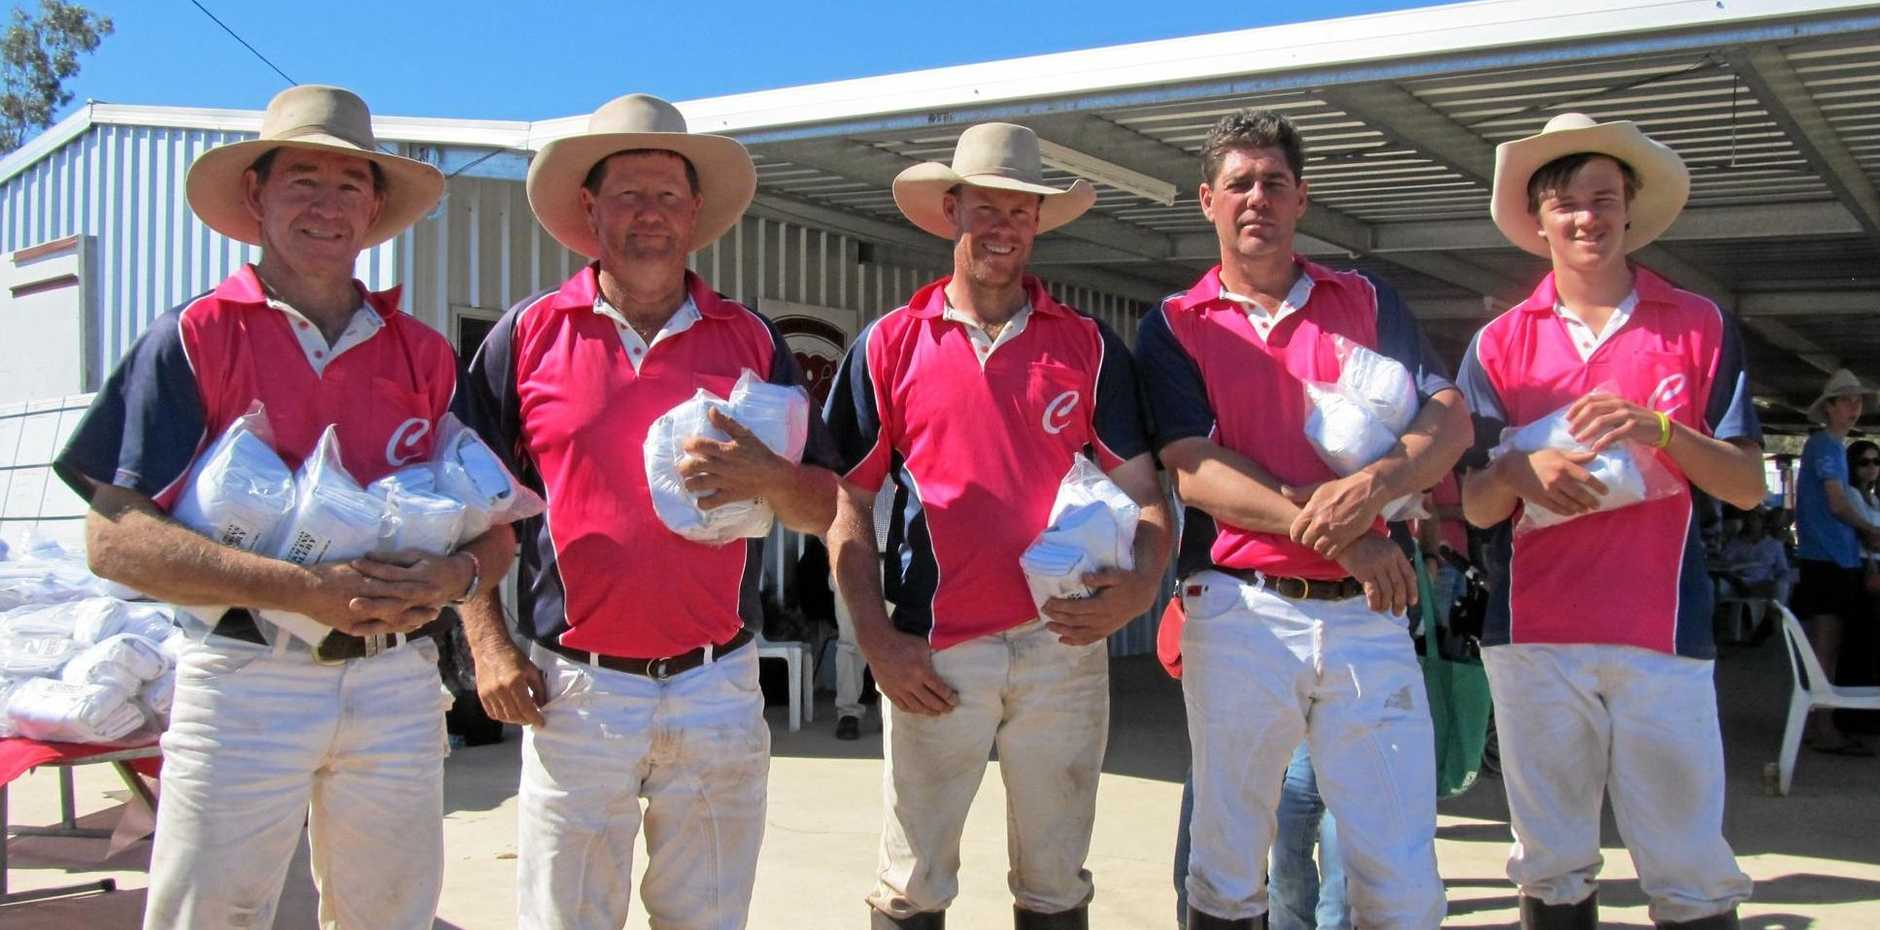 THANKFUL: Chinchilla Polocrosse Club president Murray Sturgess (second from left) has praised the Western Downs Regional Council for helping the club with its water issues.